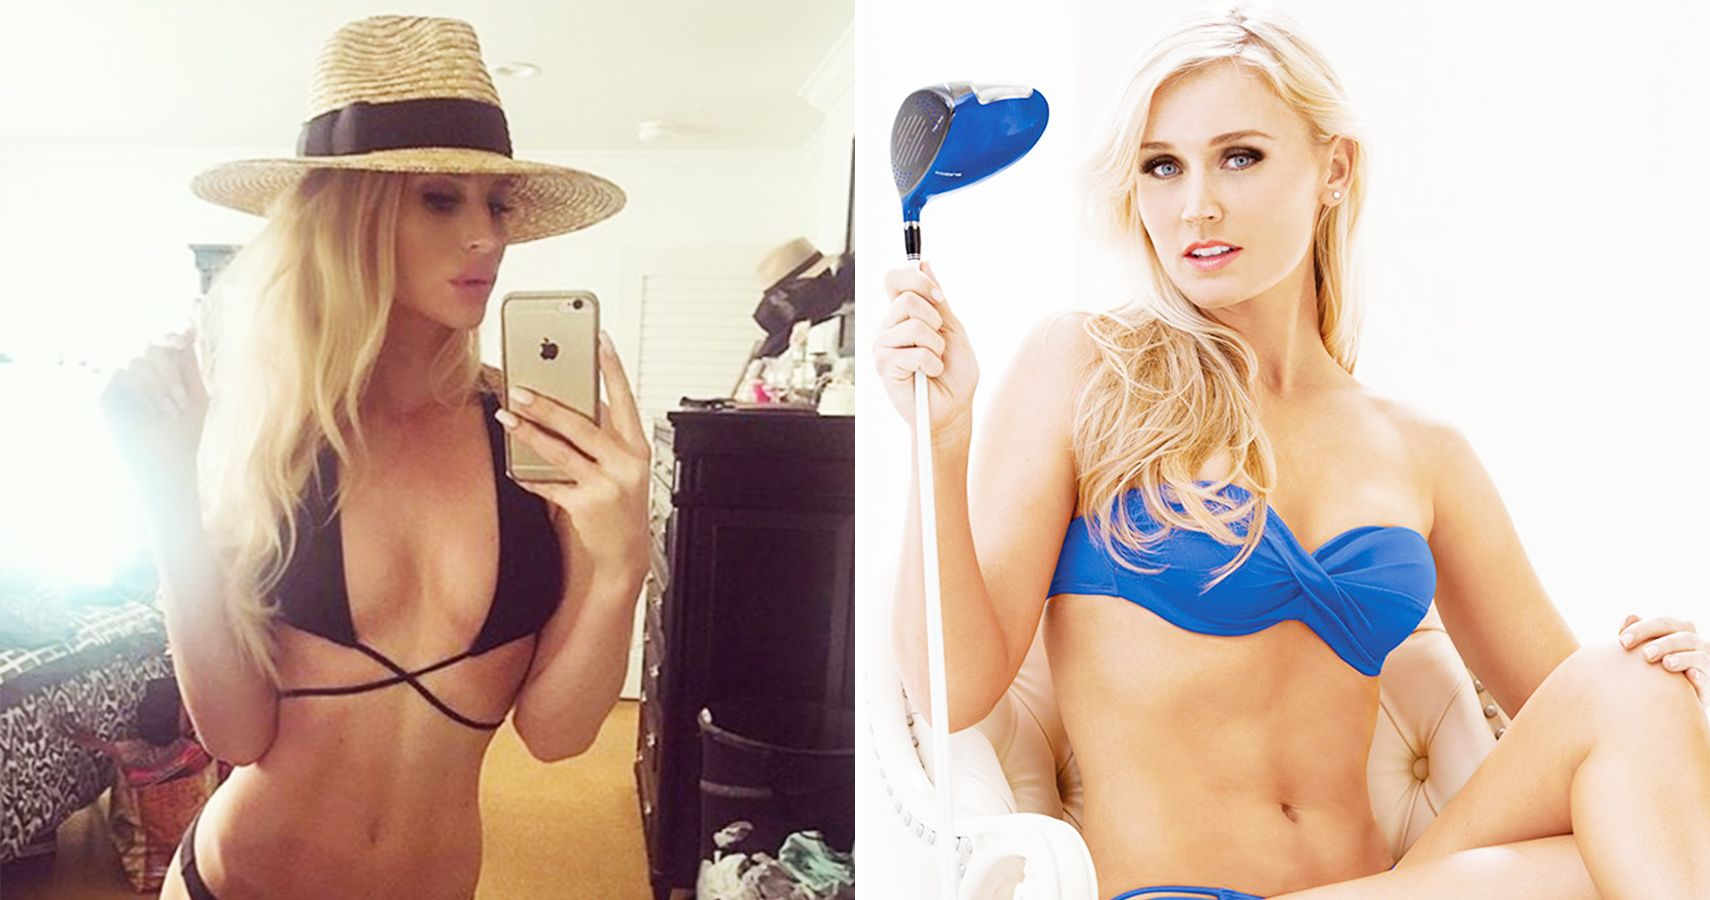 Top 15 Photos Of Female Golf Stars In Swimsuits You Need To See